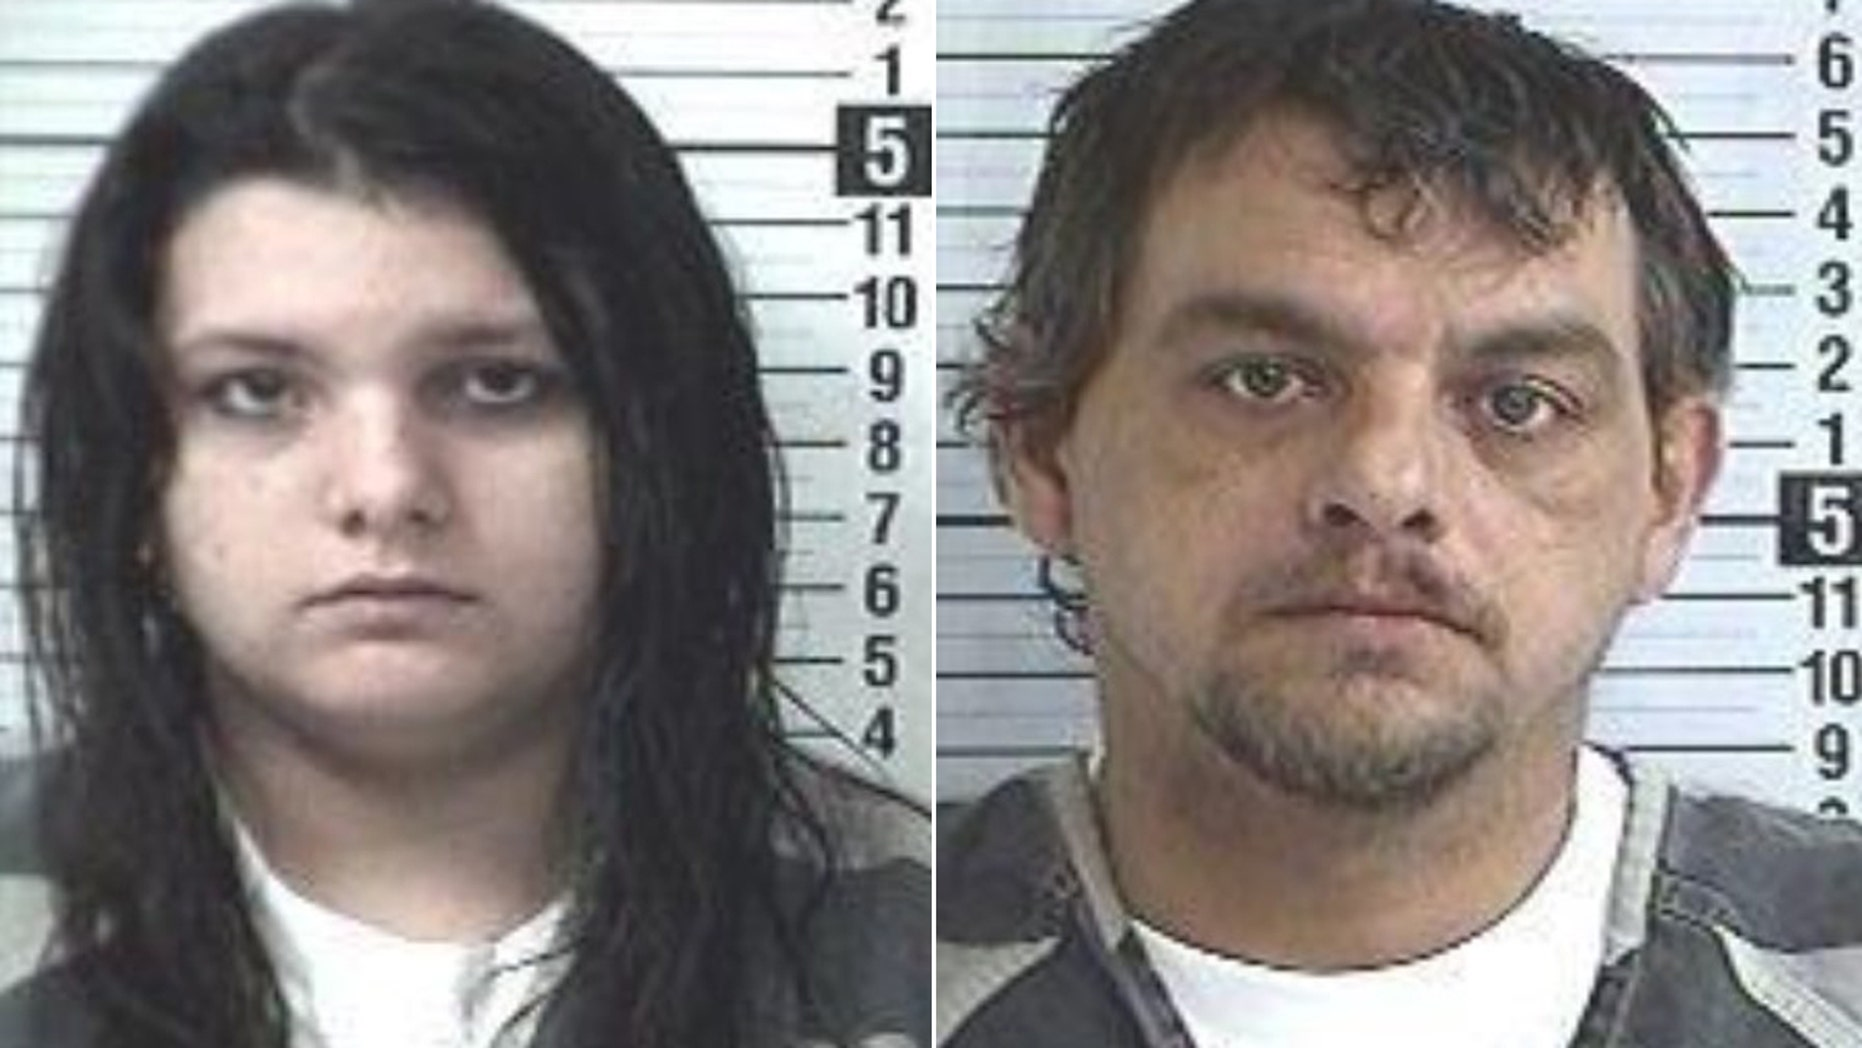 Taylor Bunn, 19, and her father Justin Bunn, 39, reportedly were arrested after witnesses allegedly saw them having sex in a backyard in Florida.